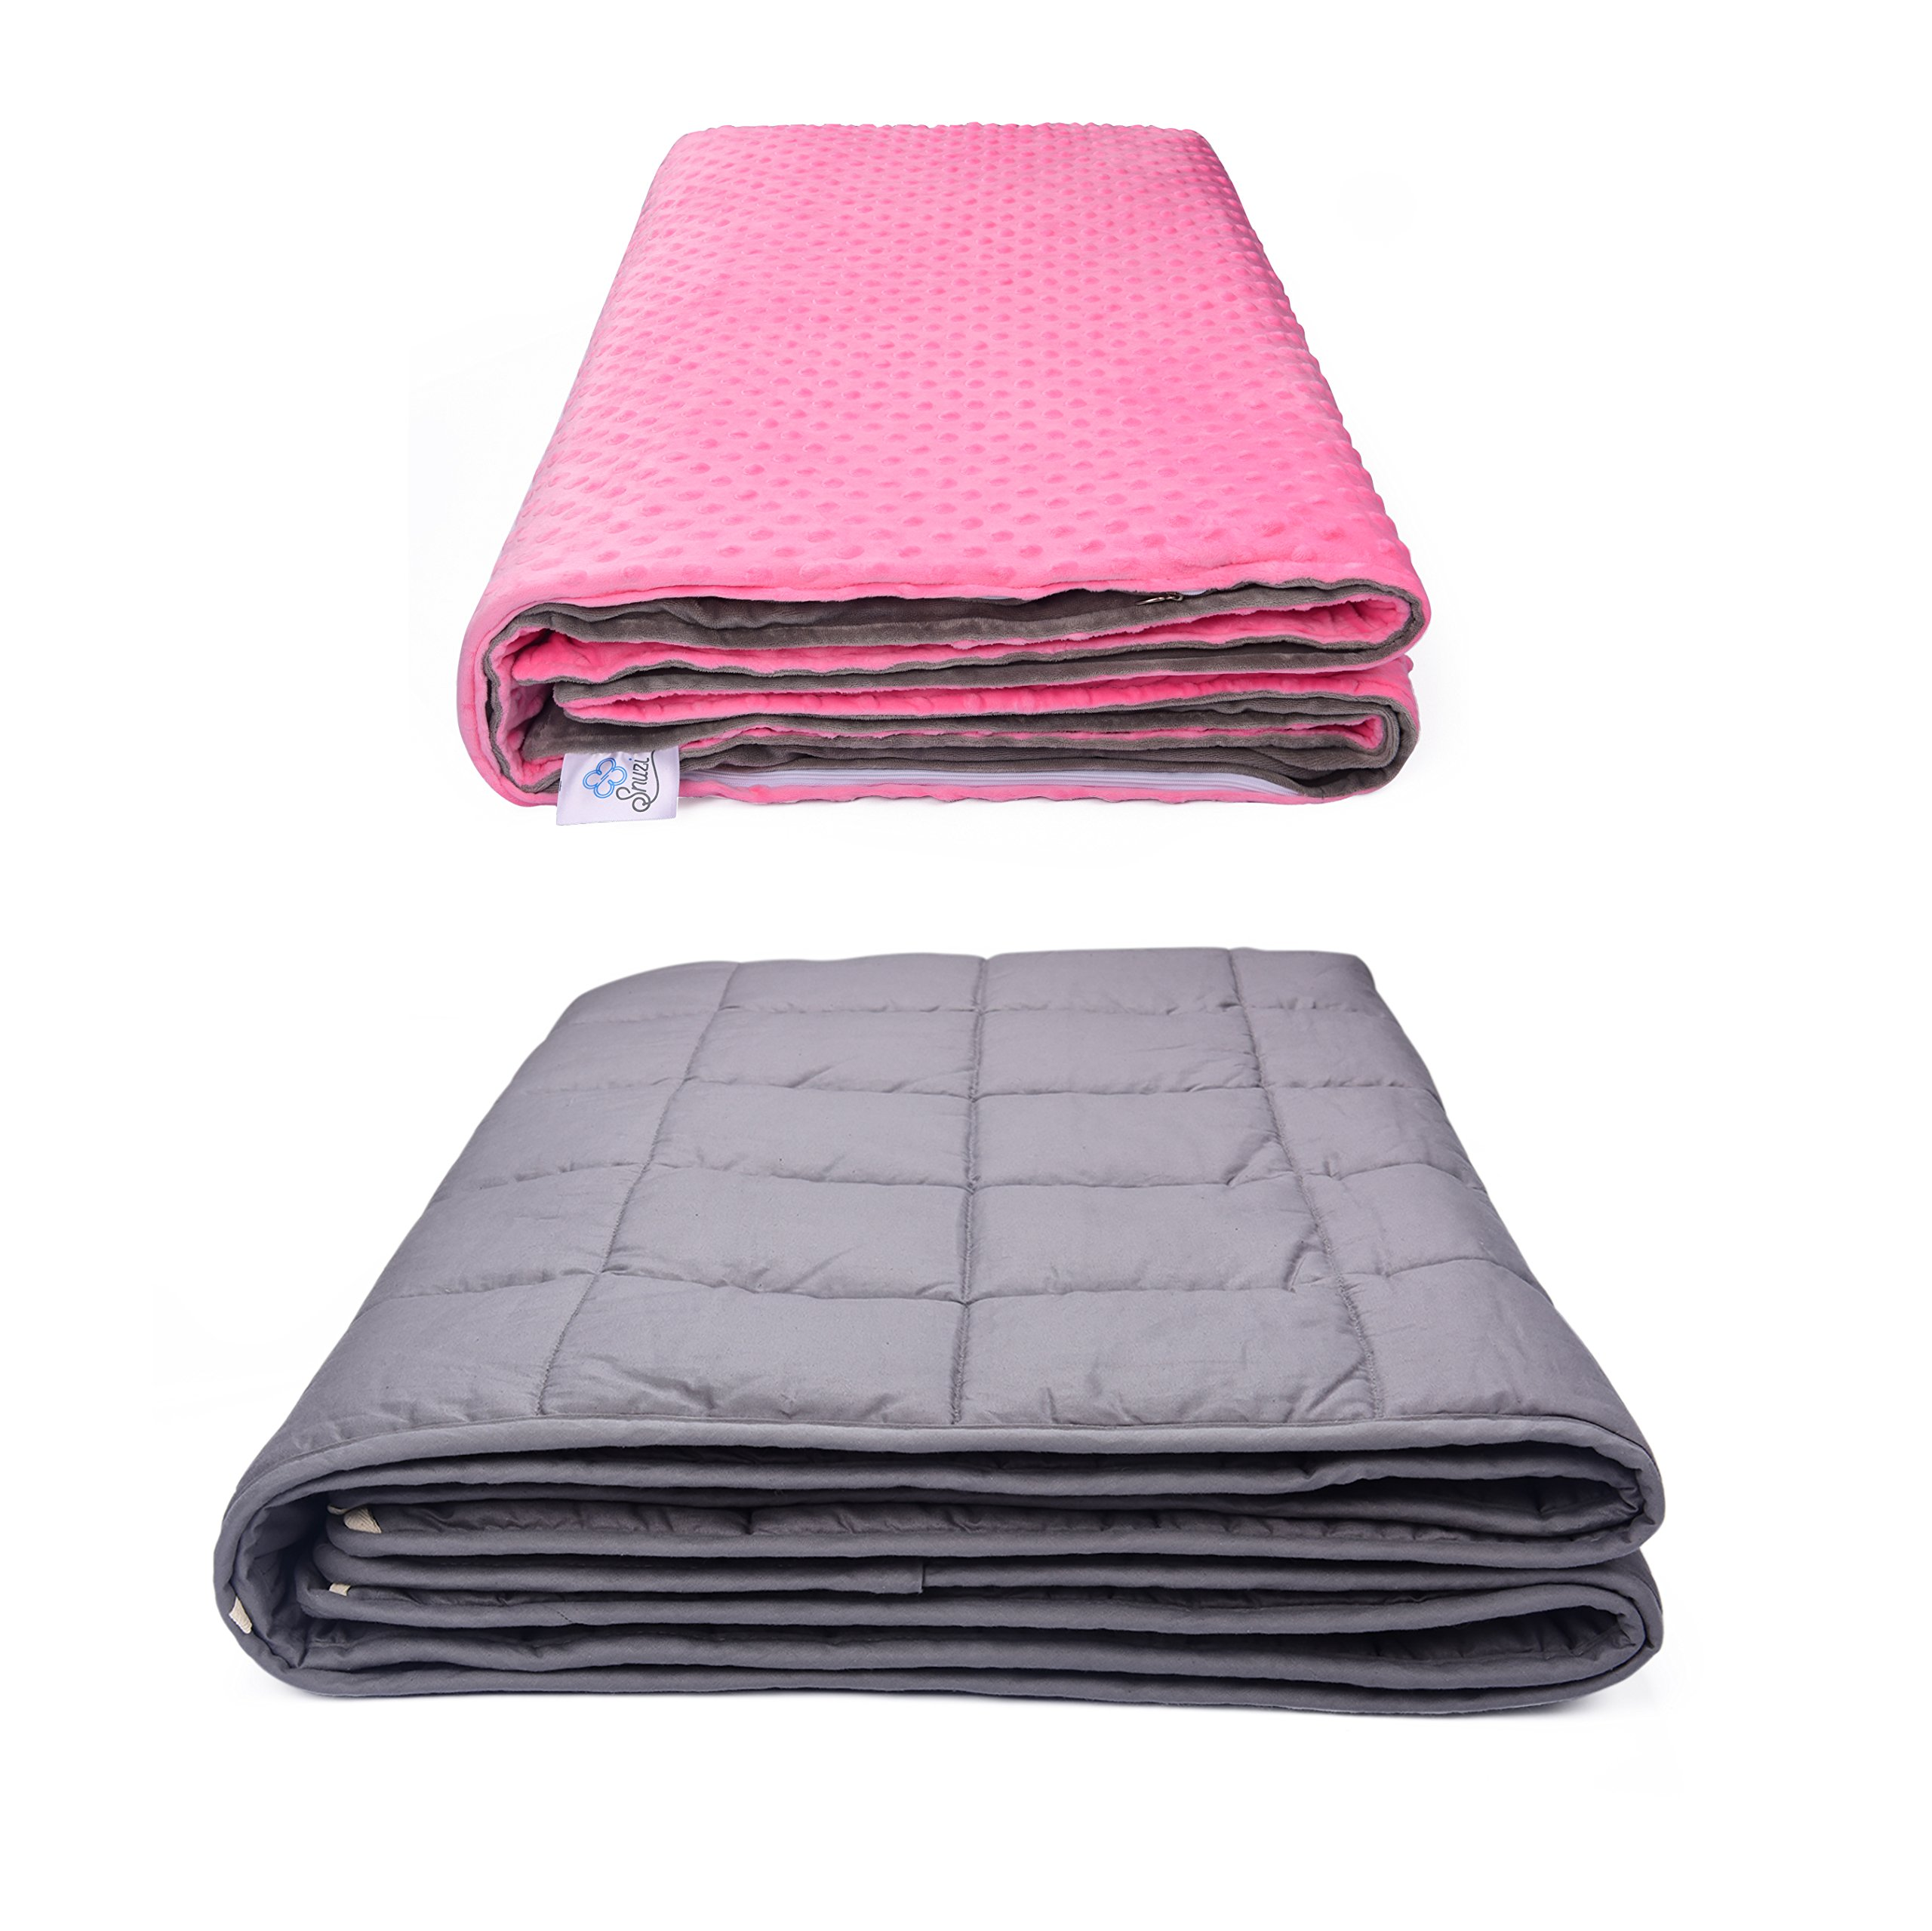 """SNUZI LIFE Weighted Blankets for Adults & Children with Anxiety 12lb 60x80"""" - Premium Gravity Blanket for Insomnia, Sensory Processing Disorder or Restless Leg Syndrome (Pink/Gray)"""